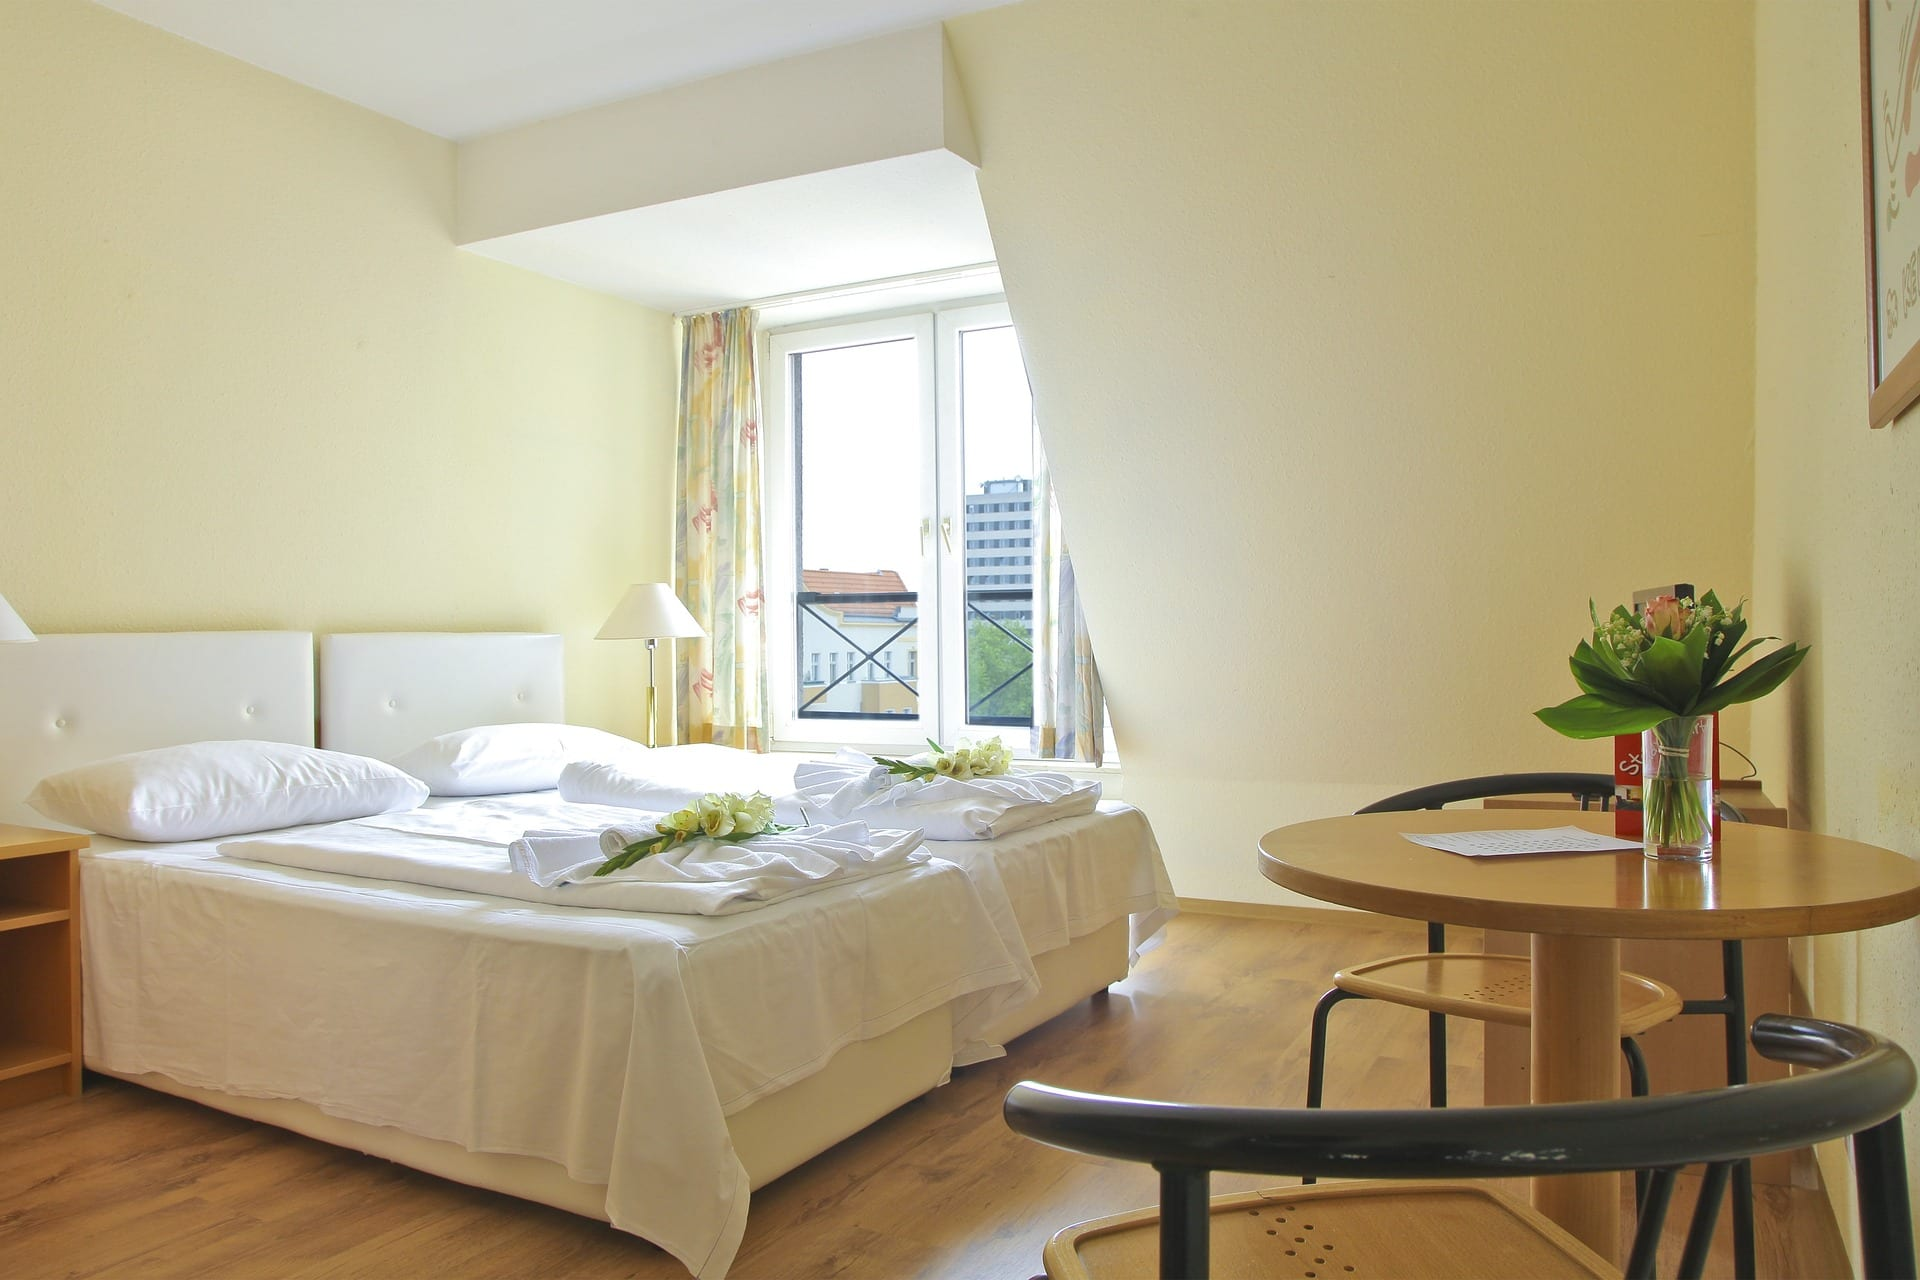 Where should you invest your budget for your B&B or guest house? Find out here!